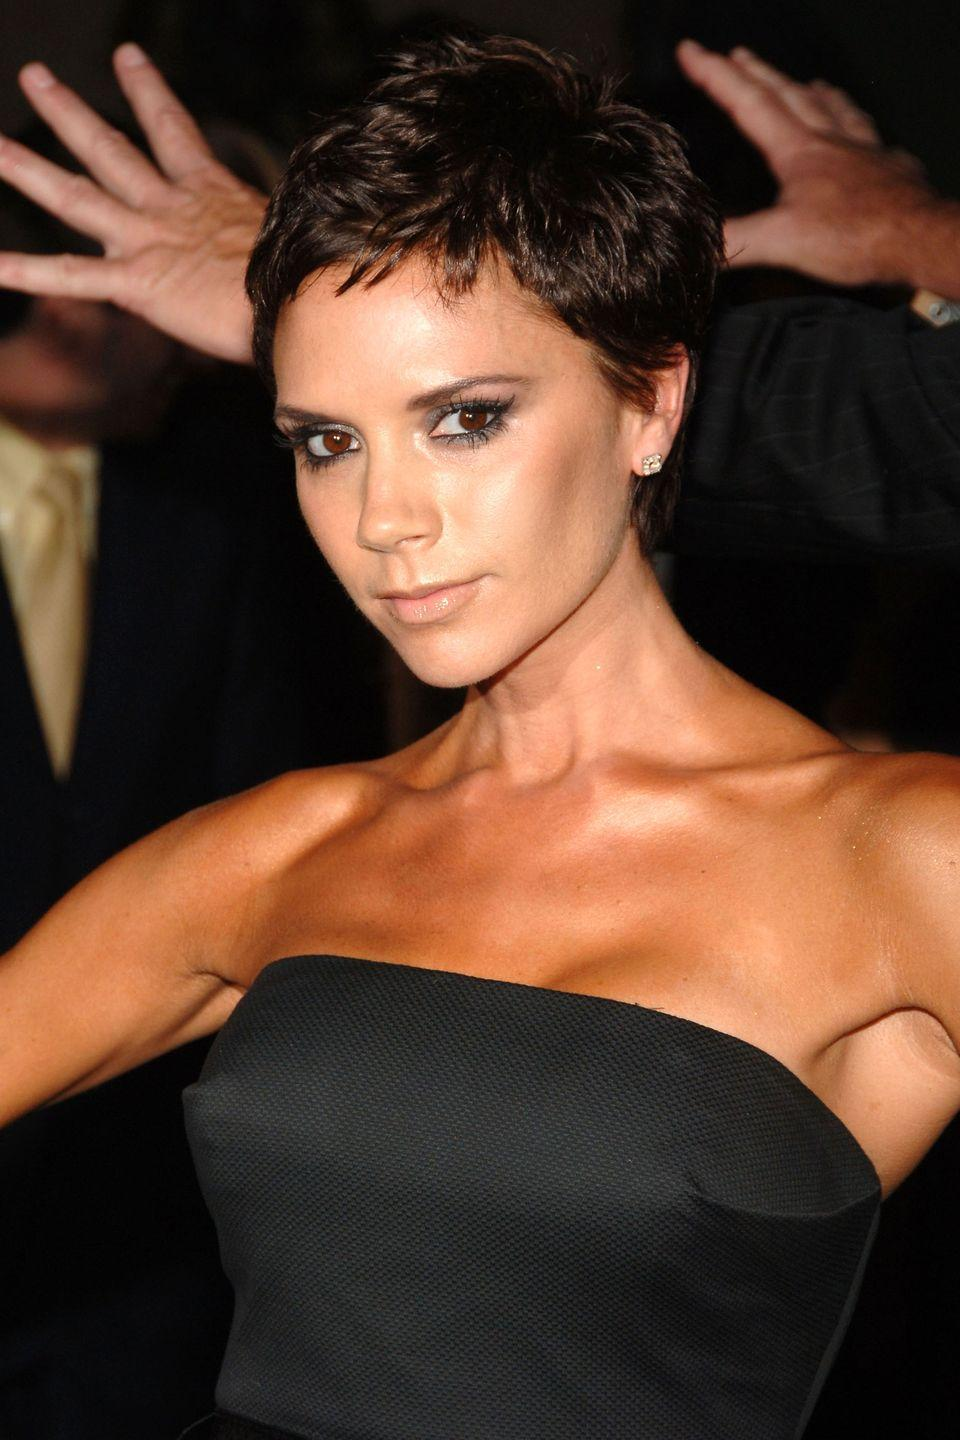 <p>Actress Victoria Beckham may not still have the Posh bob, but this effortless cool-girl cut, with short layers and little bangs, is just as good. </p>